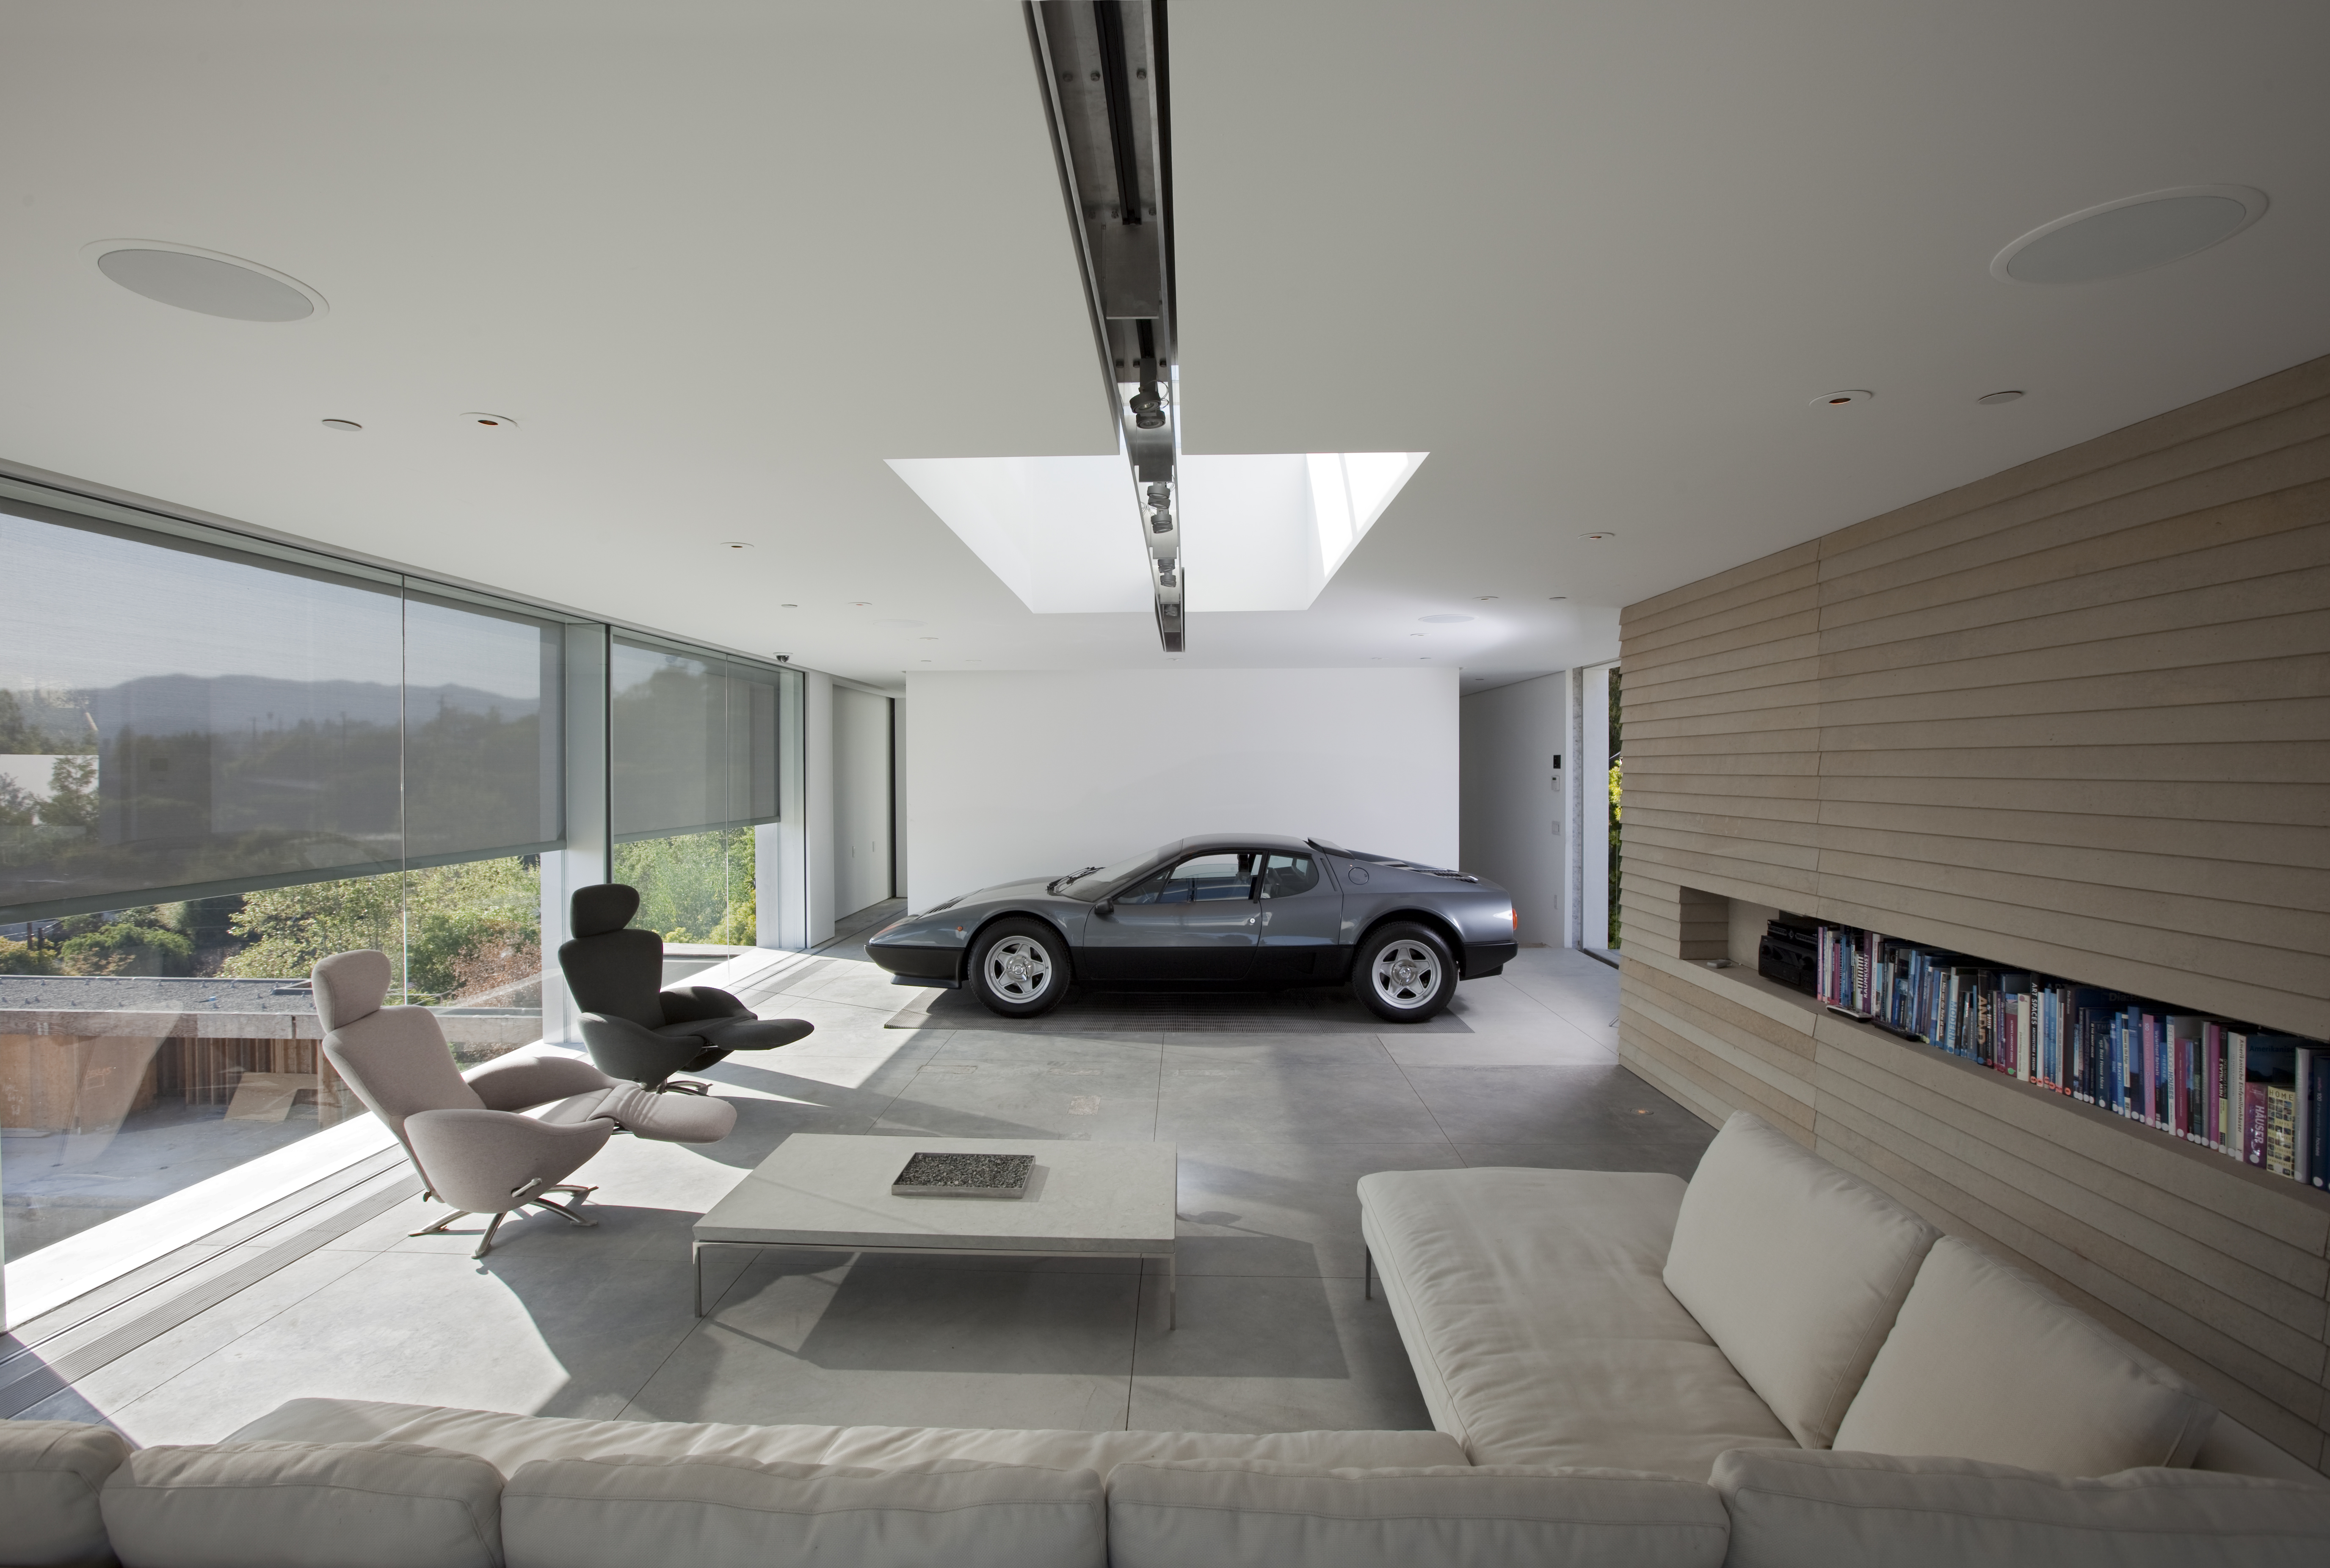 The Ultimate Garage Phantom Screens Make Your Own Beautiful  HD Wallpapers, Images Over 1000+ [ralydesign.ml]